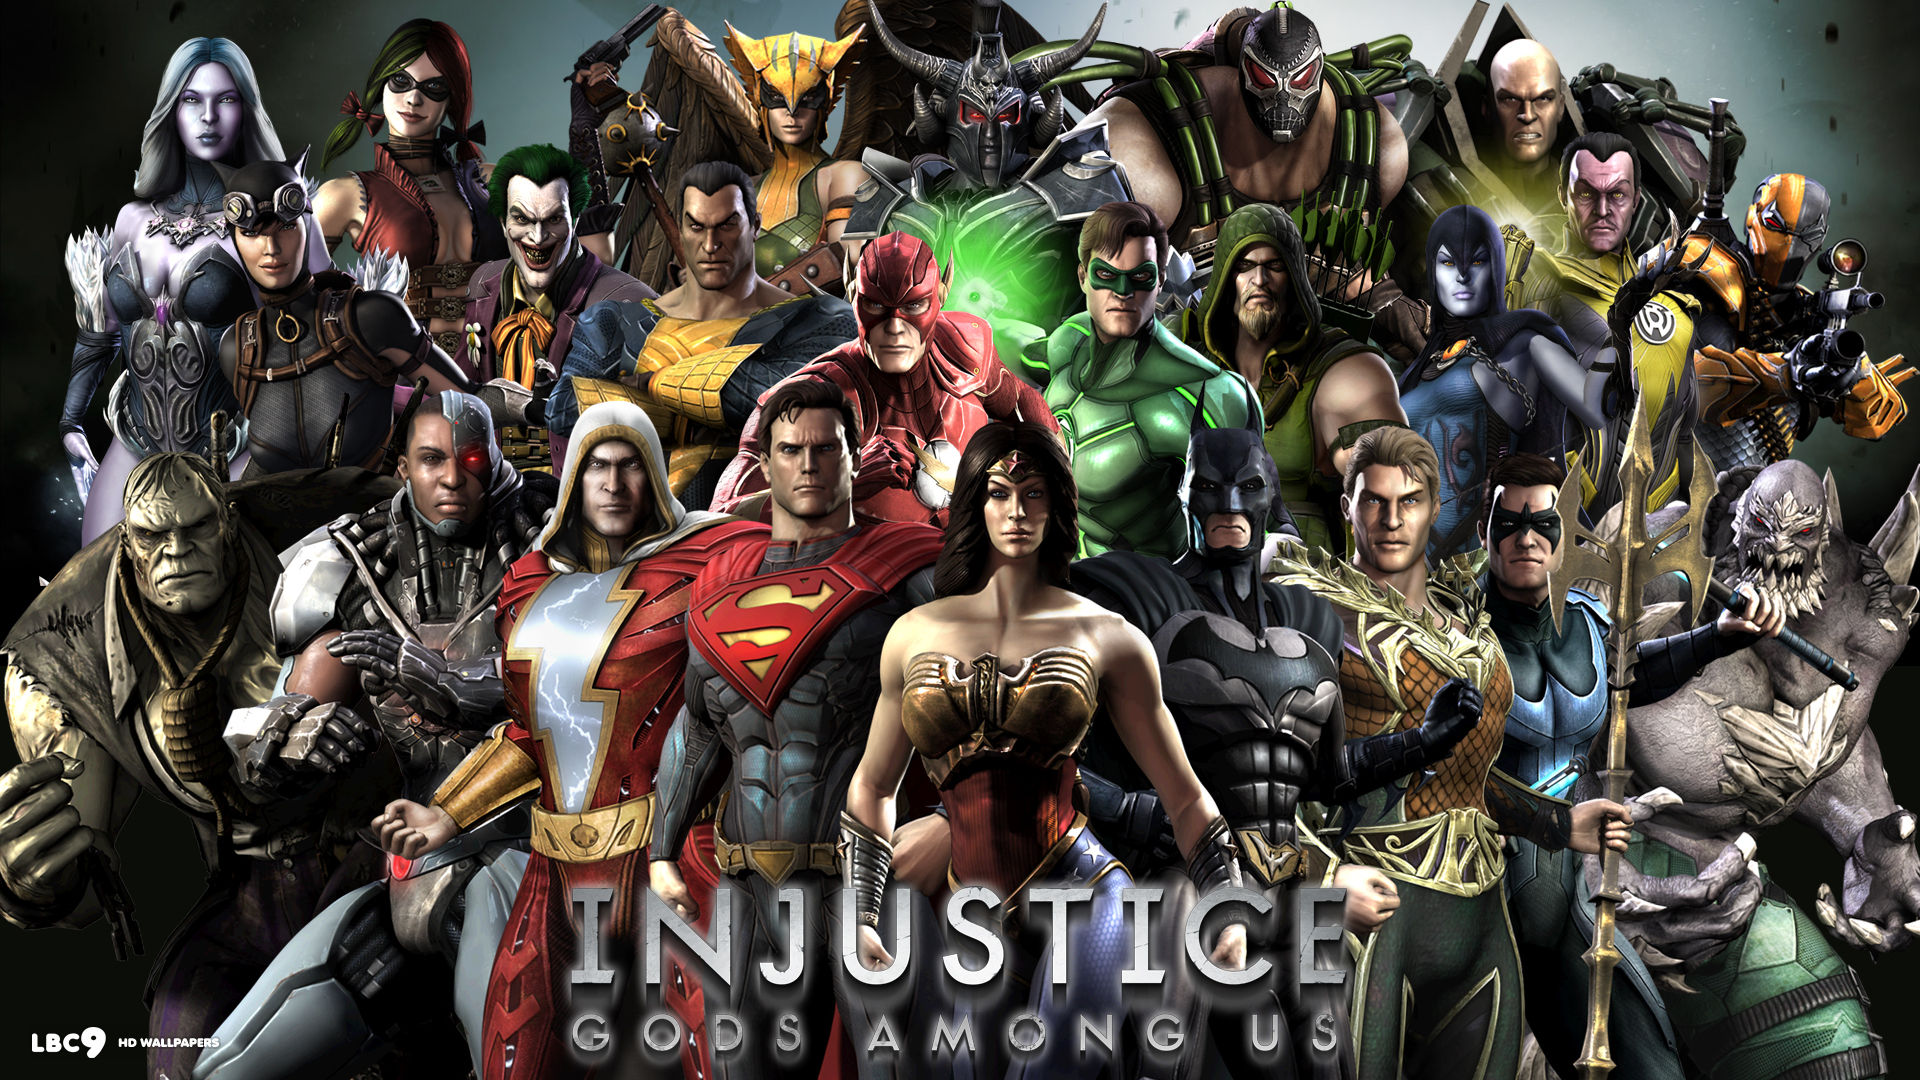 3220012-injustice-gods-among-us-wallpaper